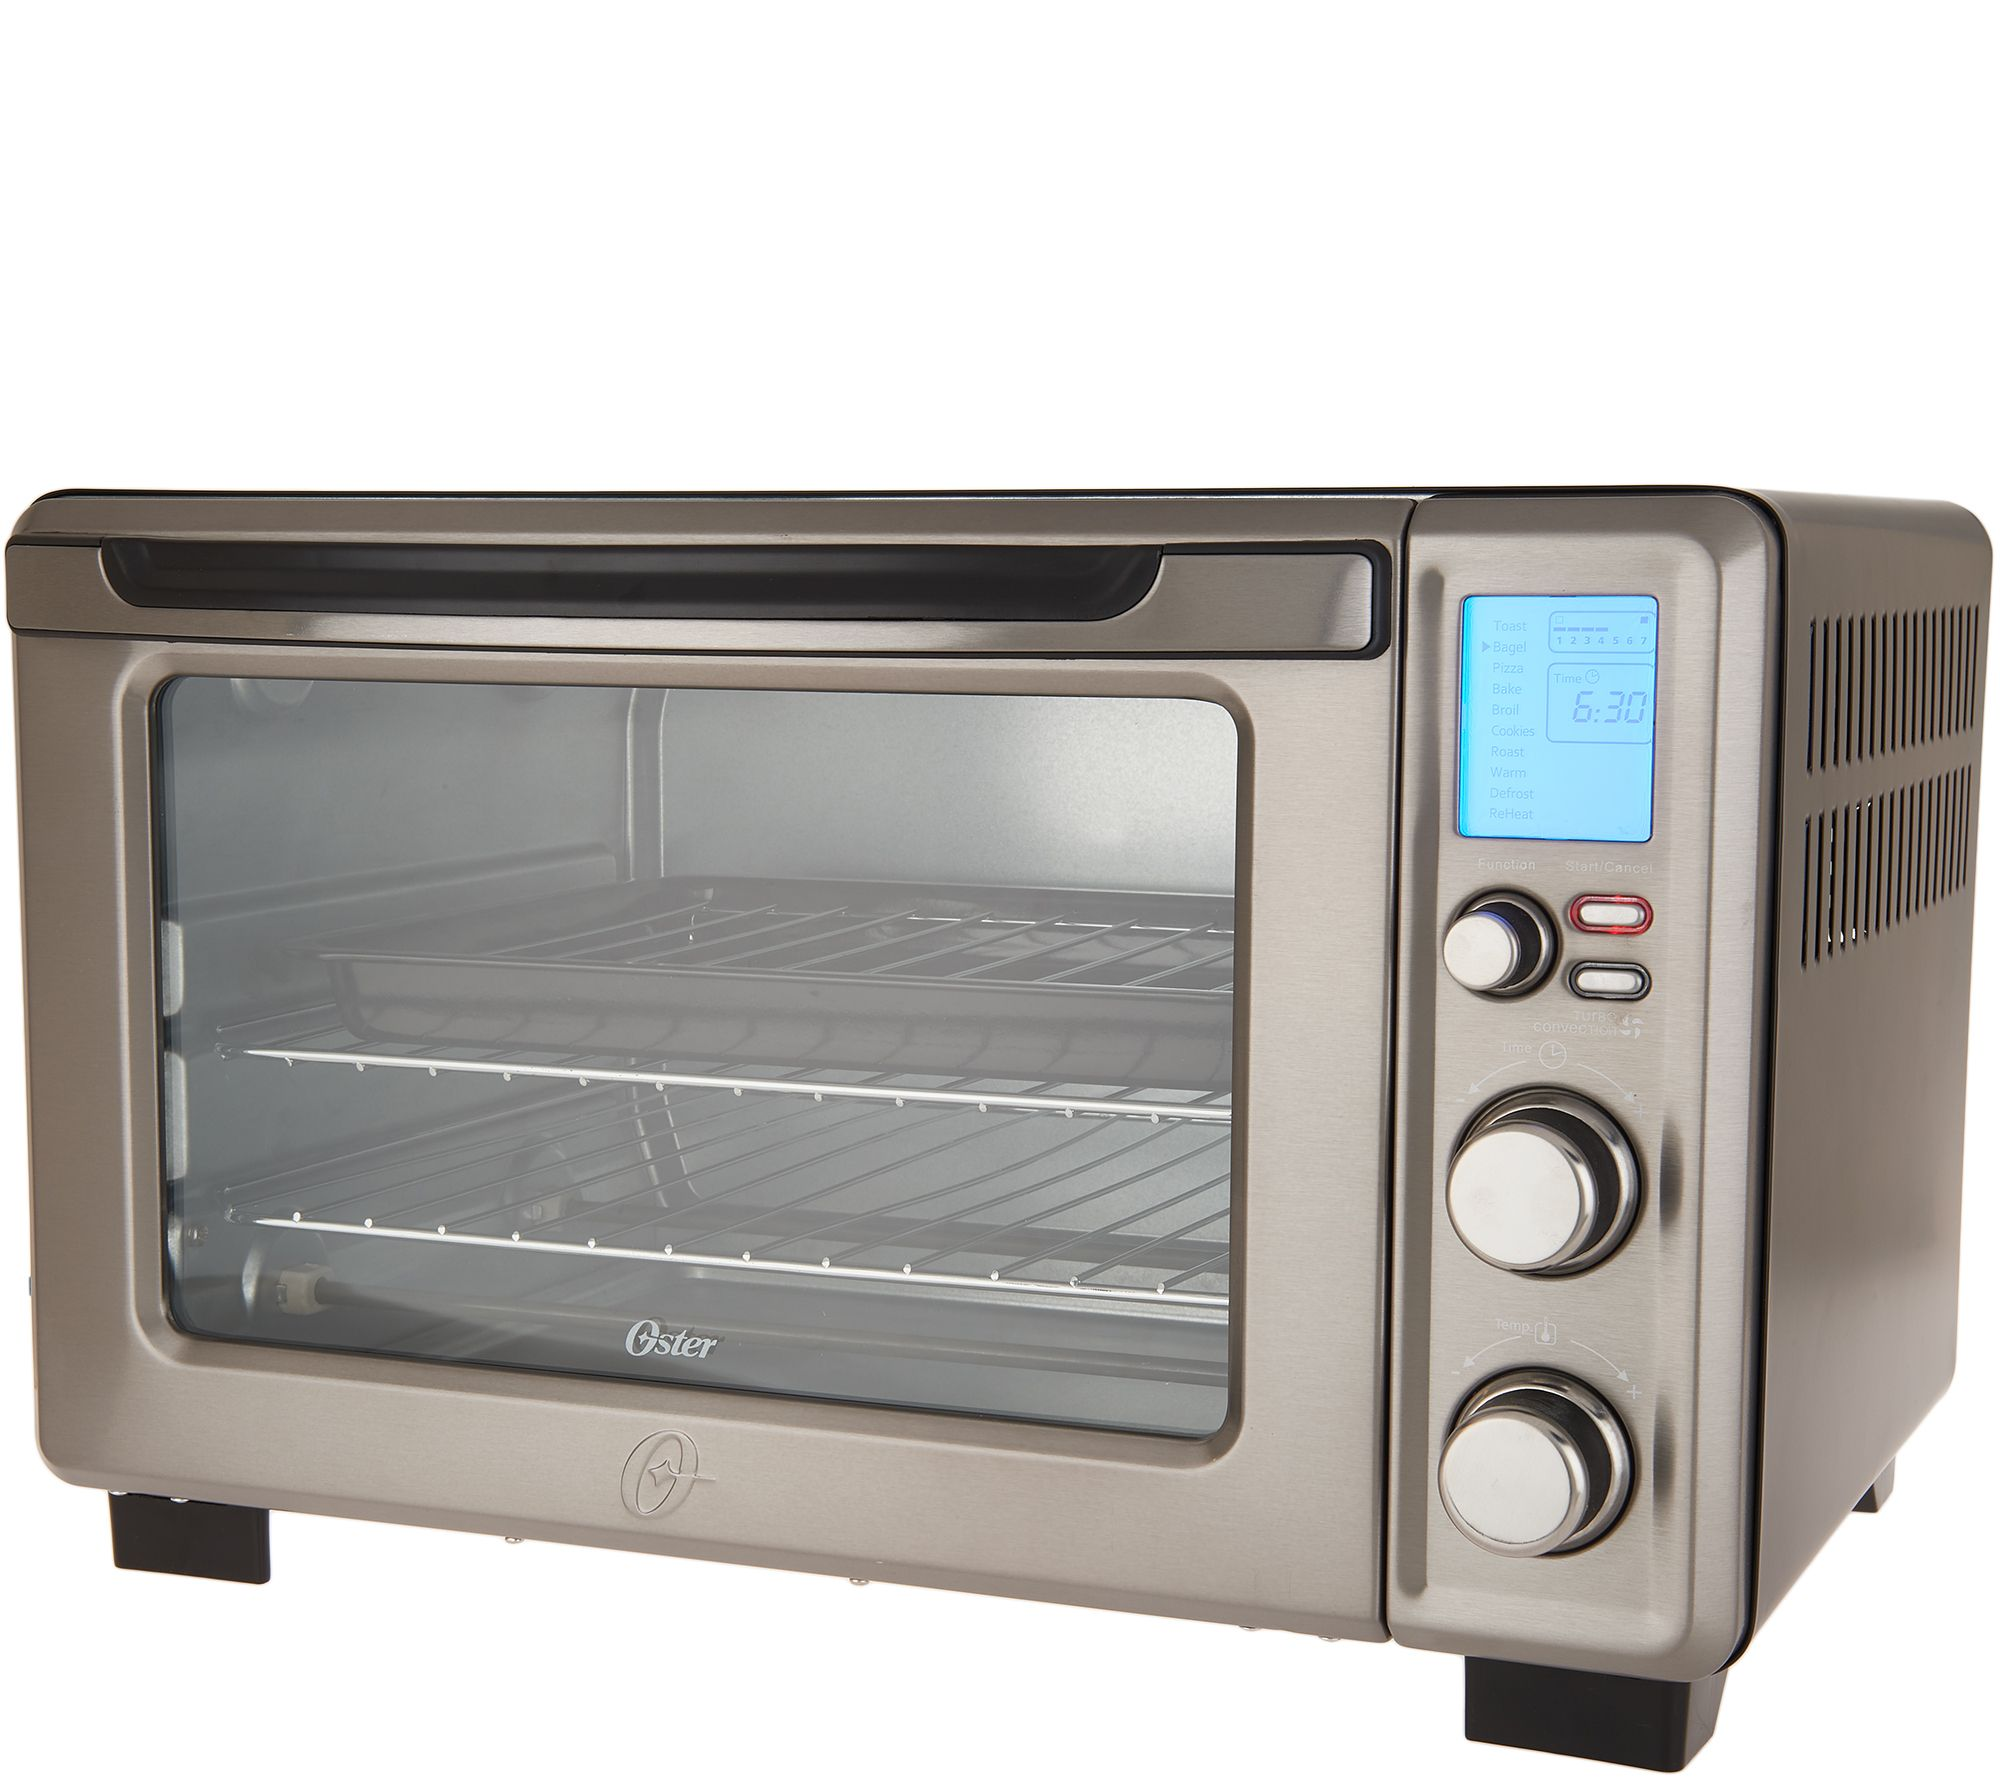 Oster Convection Countertop Oven Reviews Oster Digital Stainless Steel Countertop Oven Qvc